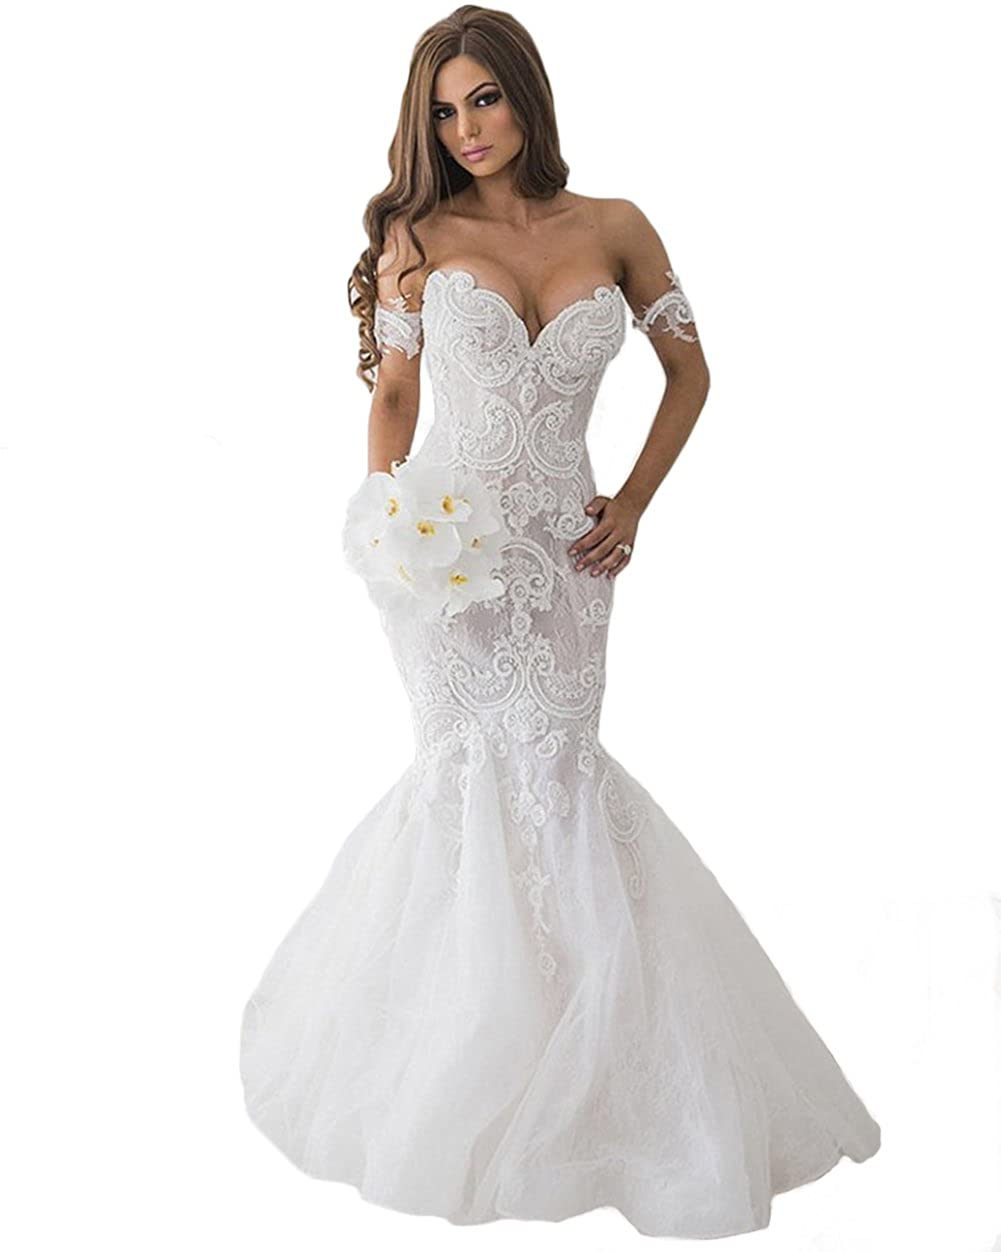 2badd46964 Tsbridal Lace Mermaid Wedding Dresses 2019 Sweetheart Wedding Gowns at  Amazon Women s Clothing store